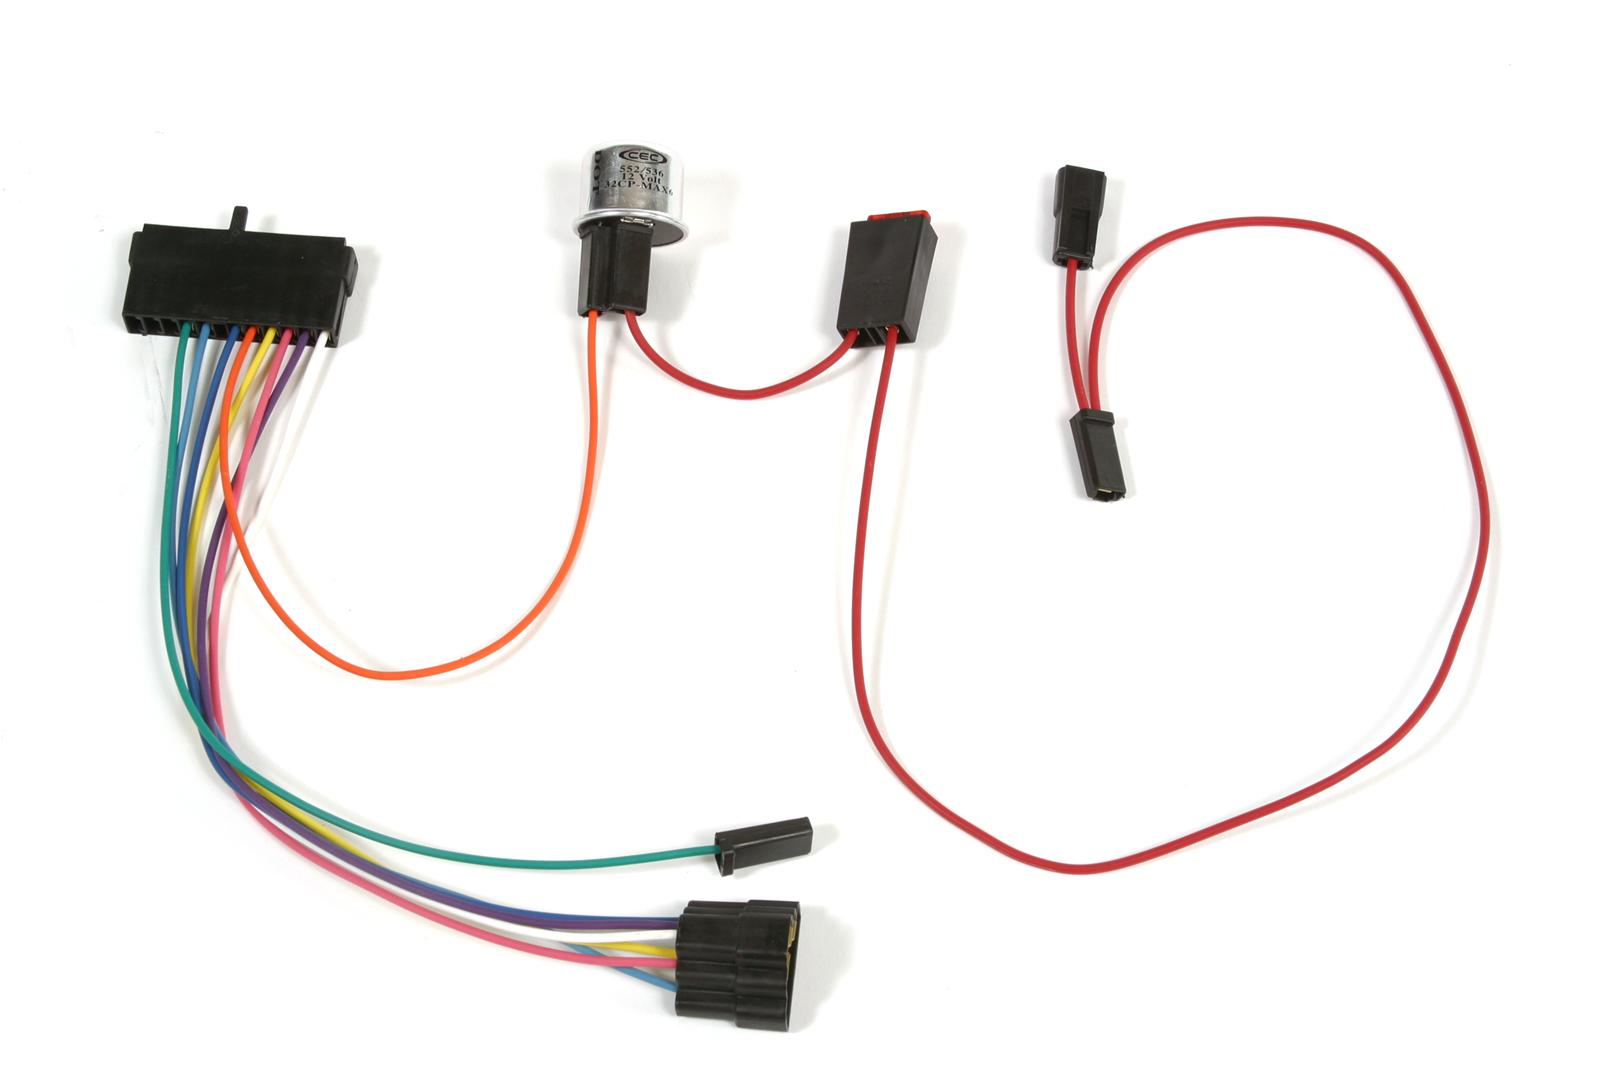 Ididit Wiring Harness Schema Diagrams Specialties Shipping Steering Column Adapter Kits 3100035780 Free